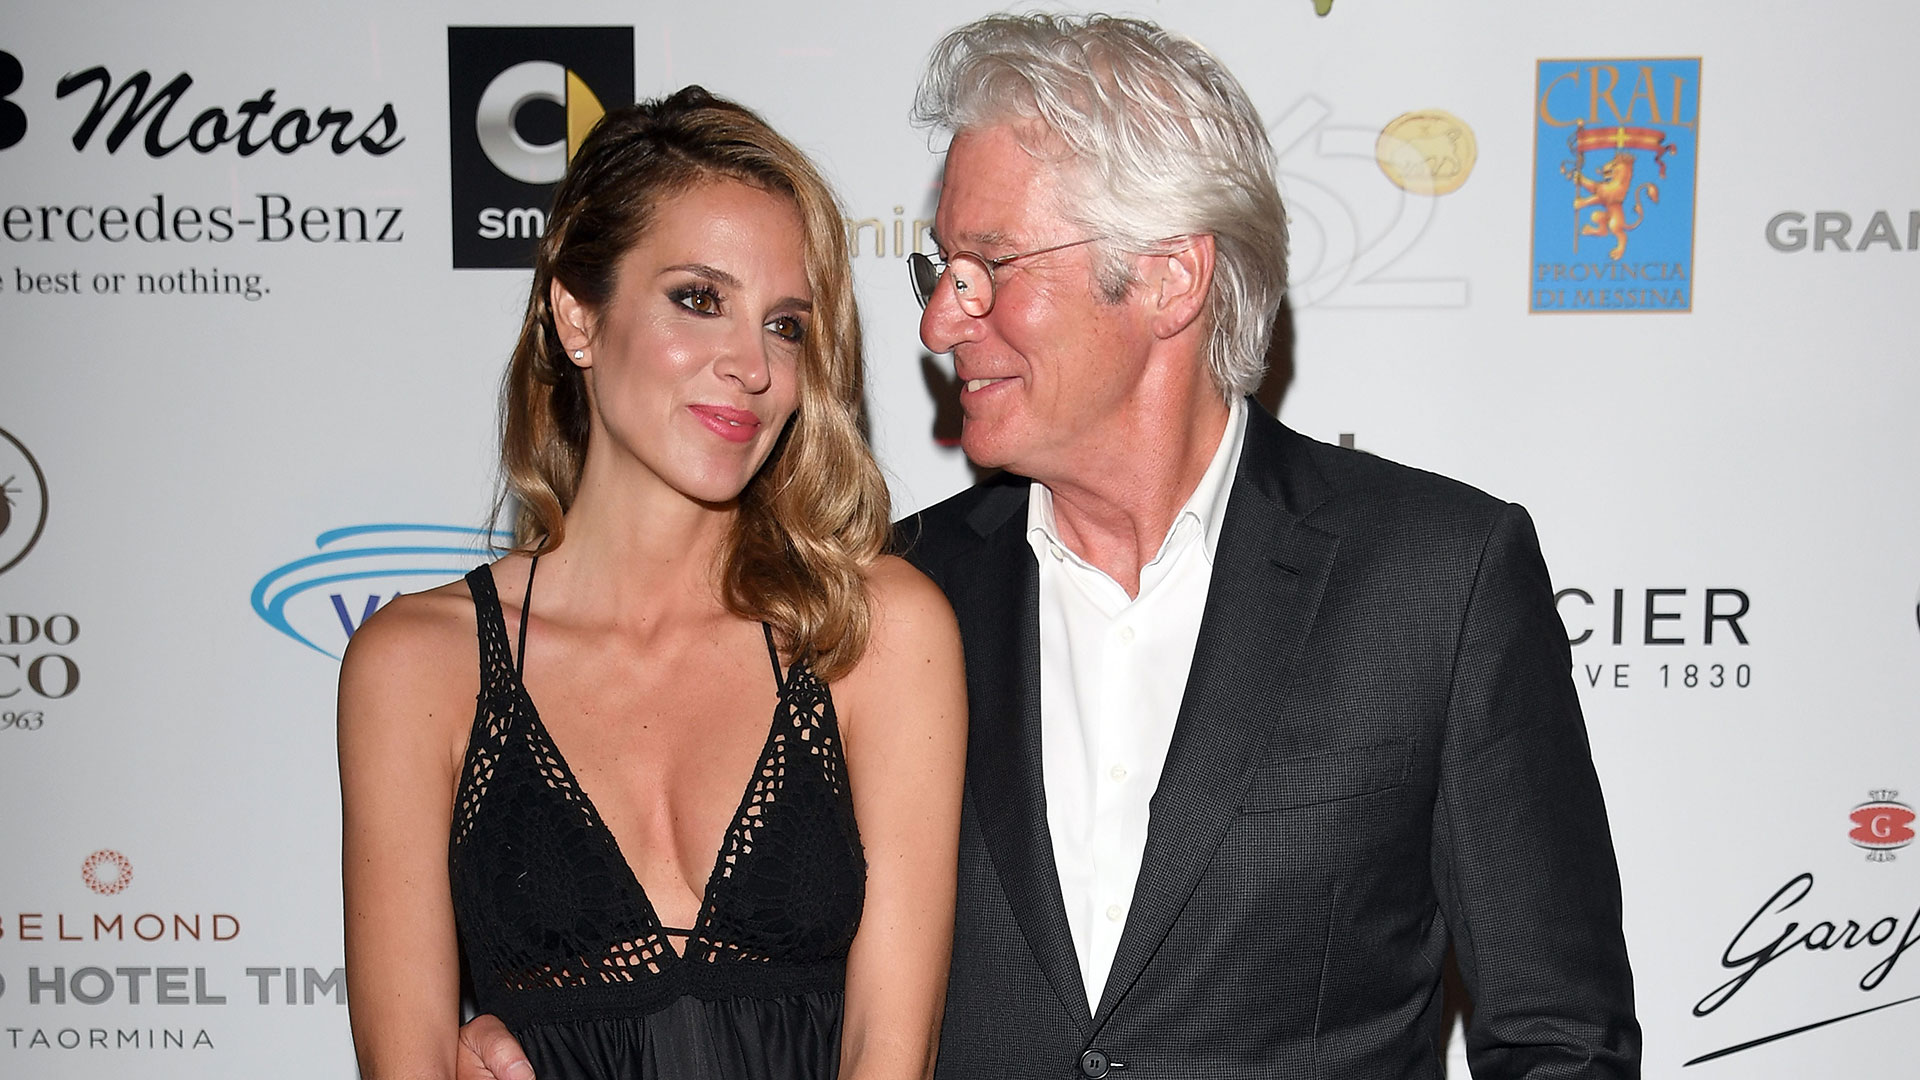 Richard Gere And Wife Alejandra Silva Expecting Baby No. 2 ...Richard Gere 2013 Wife